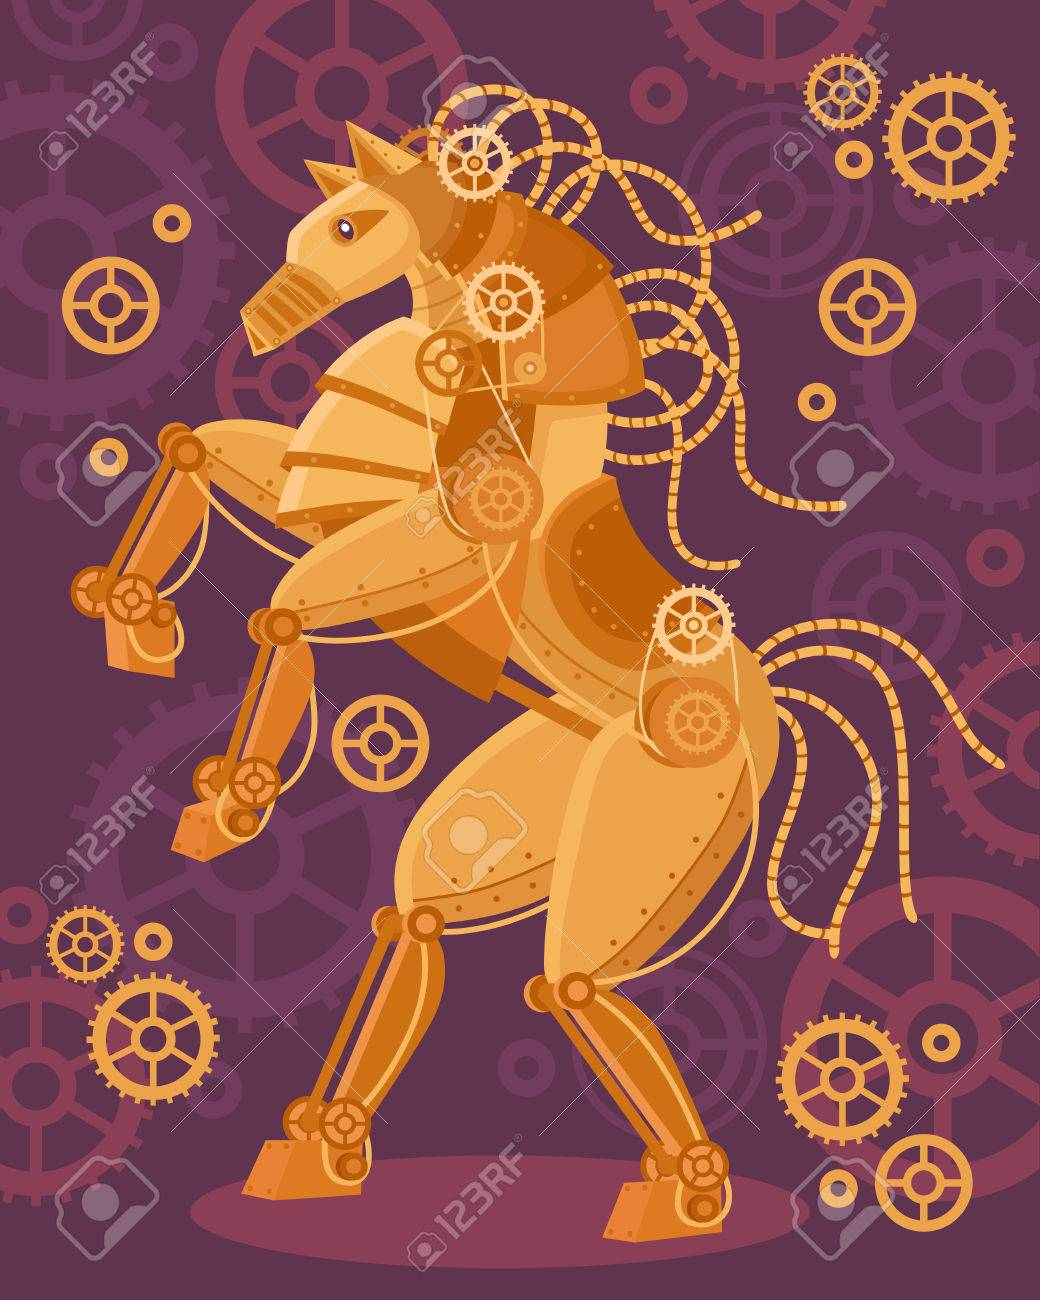 Steampunk Art Golden Horse Poster Mechanical Figurine And Mechanisms Royalty Free Cliparts Vectors And Stock Illustration Image 57186981